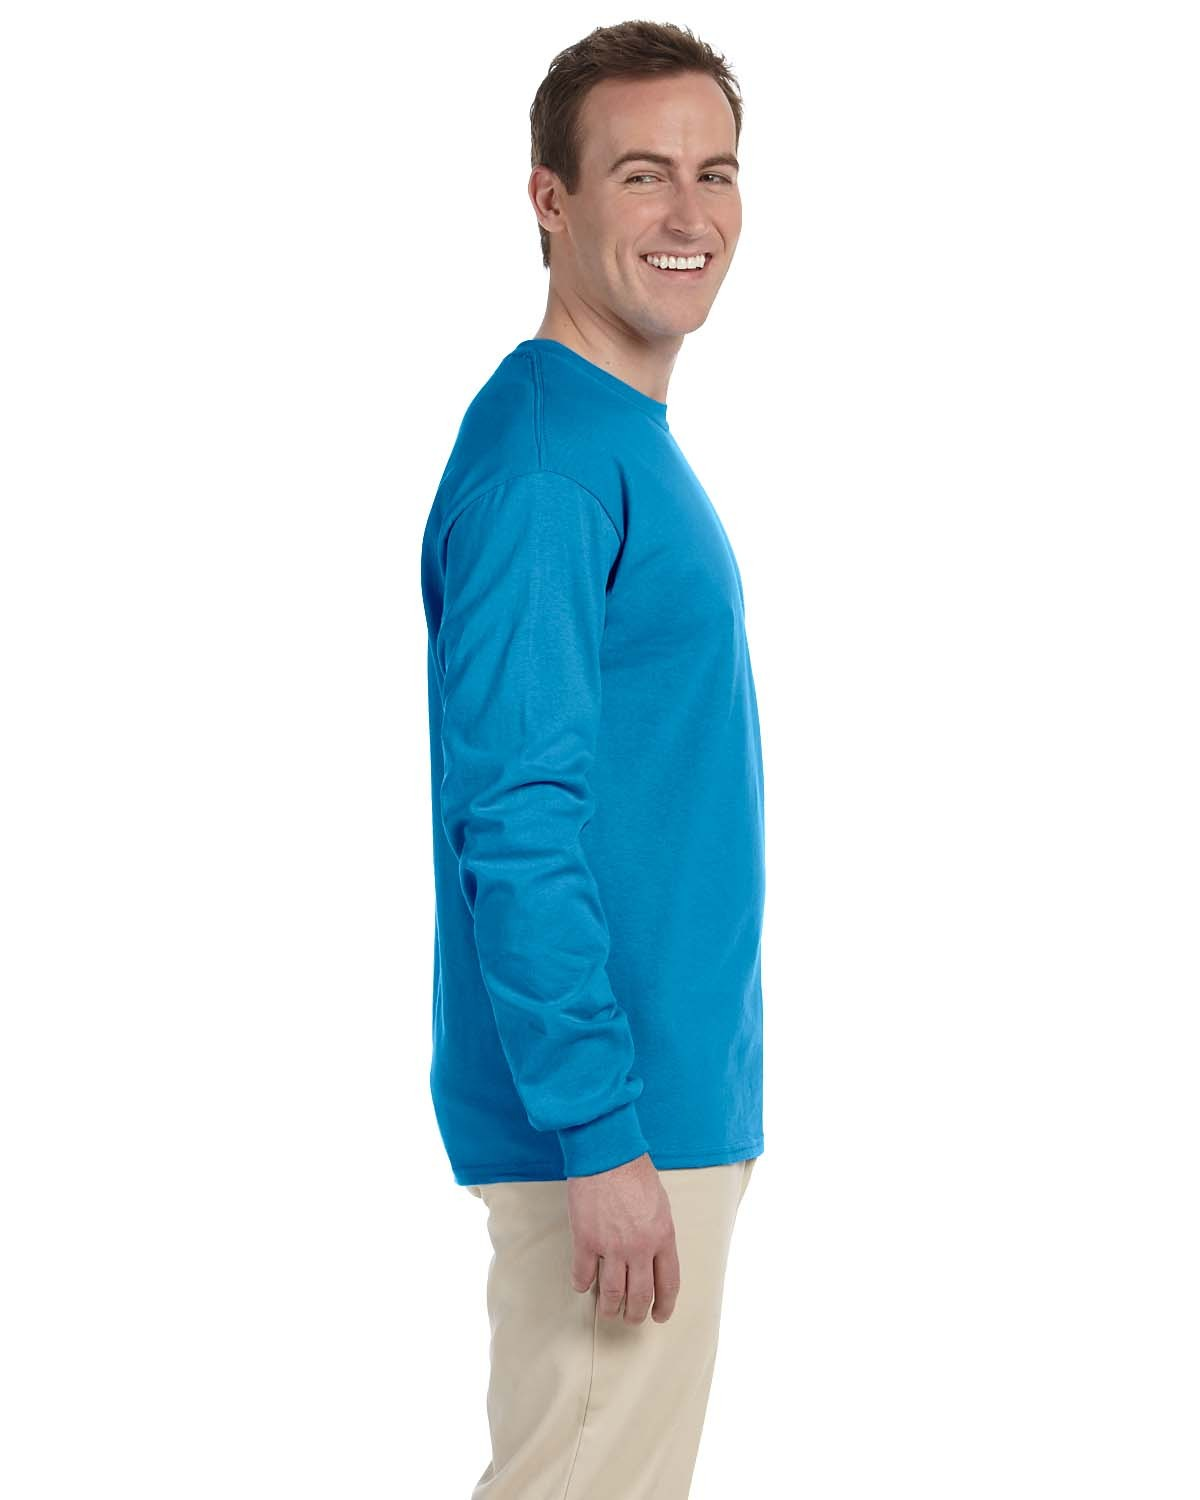 4930 Fruit of the Loom PACIFIC BLUE